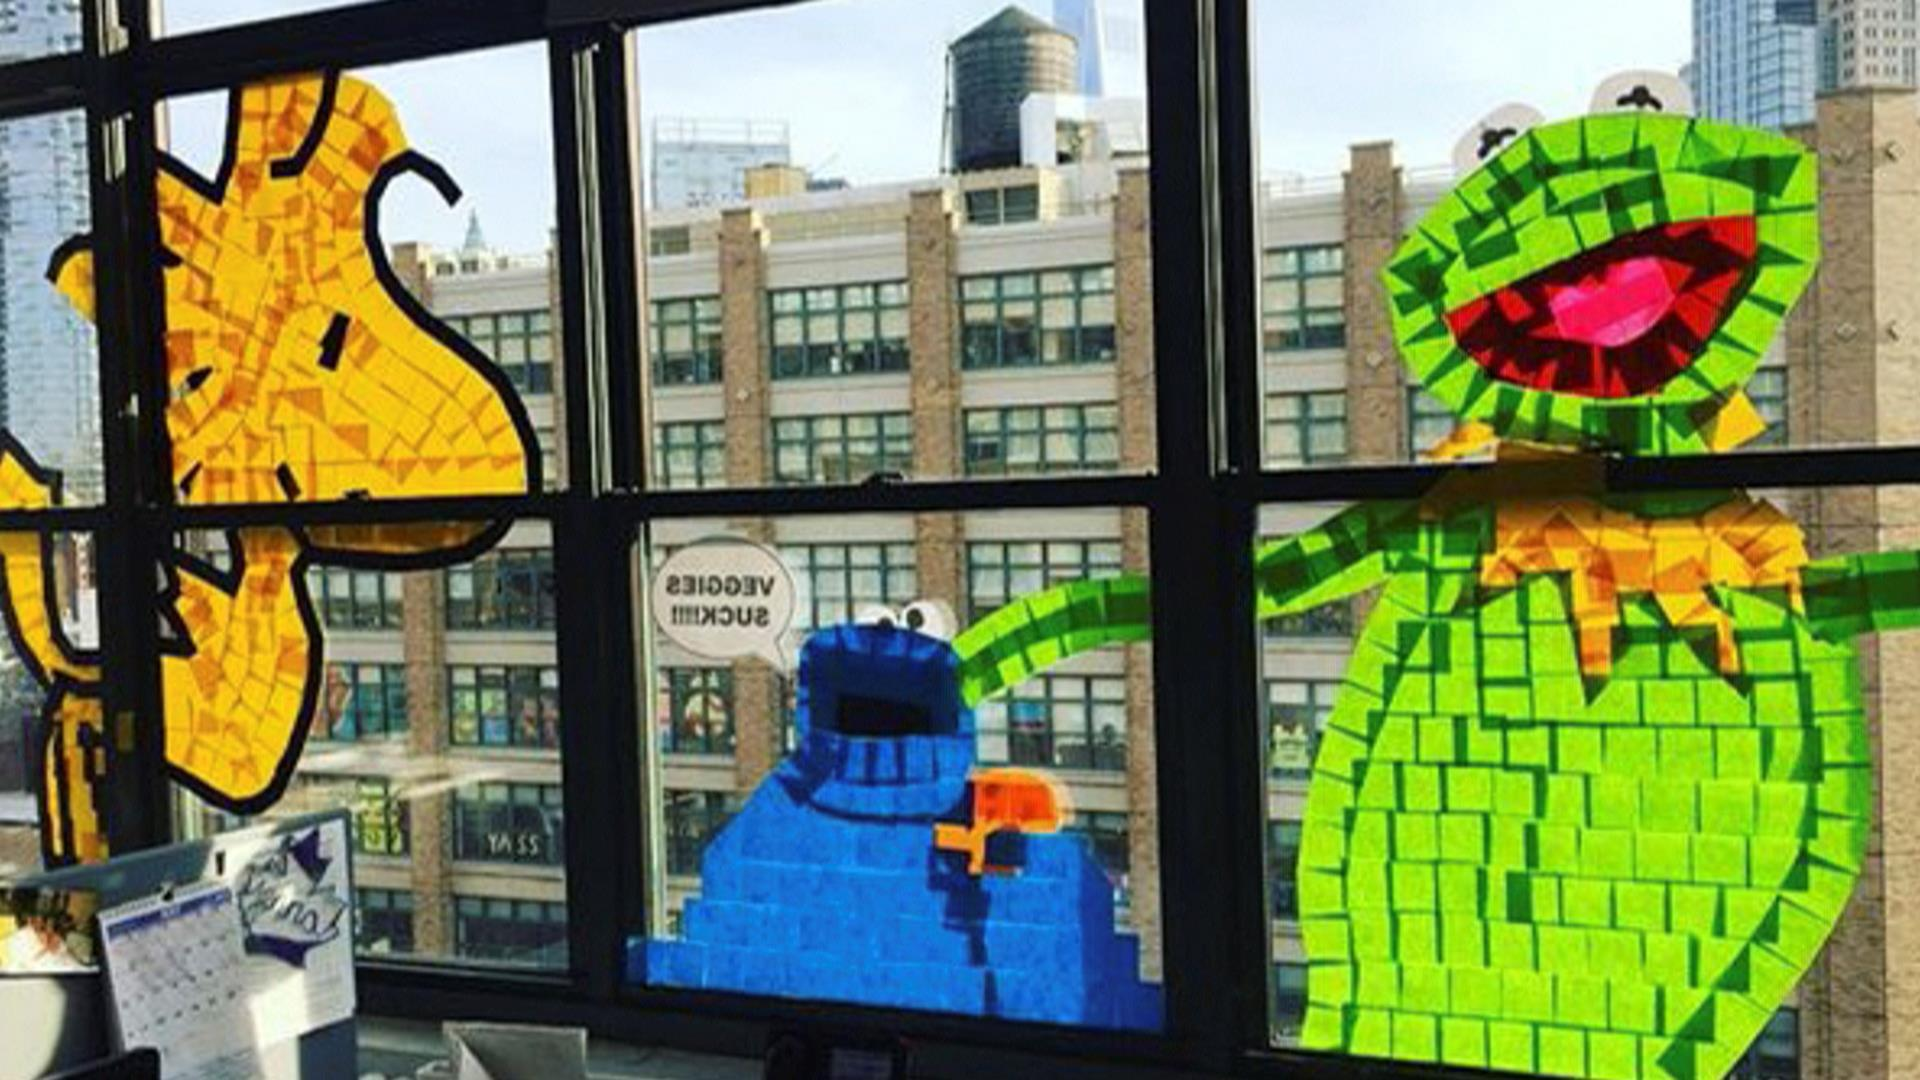 epic post it war plasters nyc office windows with playful designs. Black Bedroom Furniture Sets. Home Design Ideas